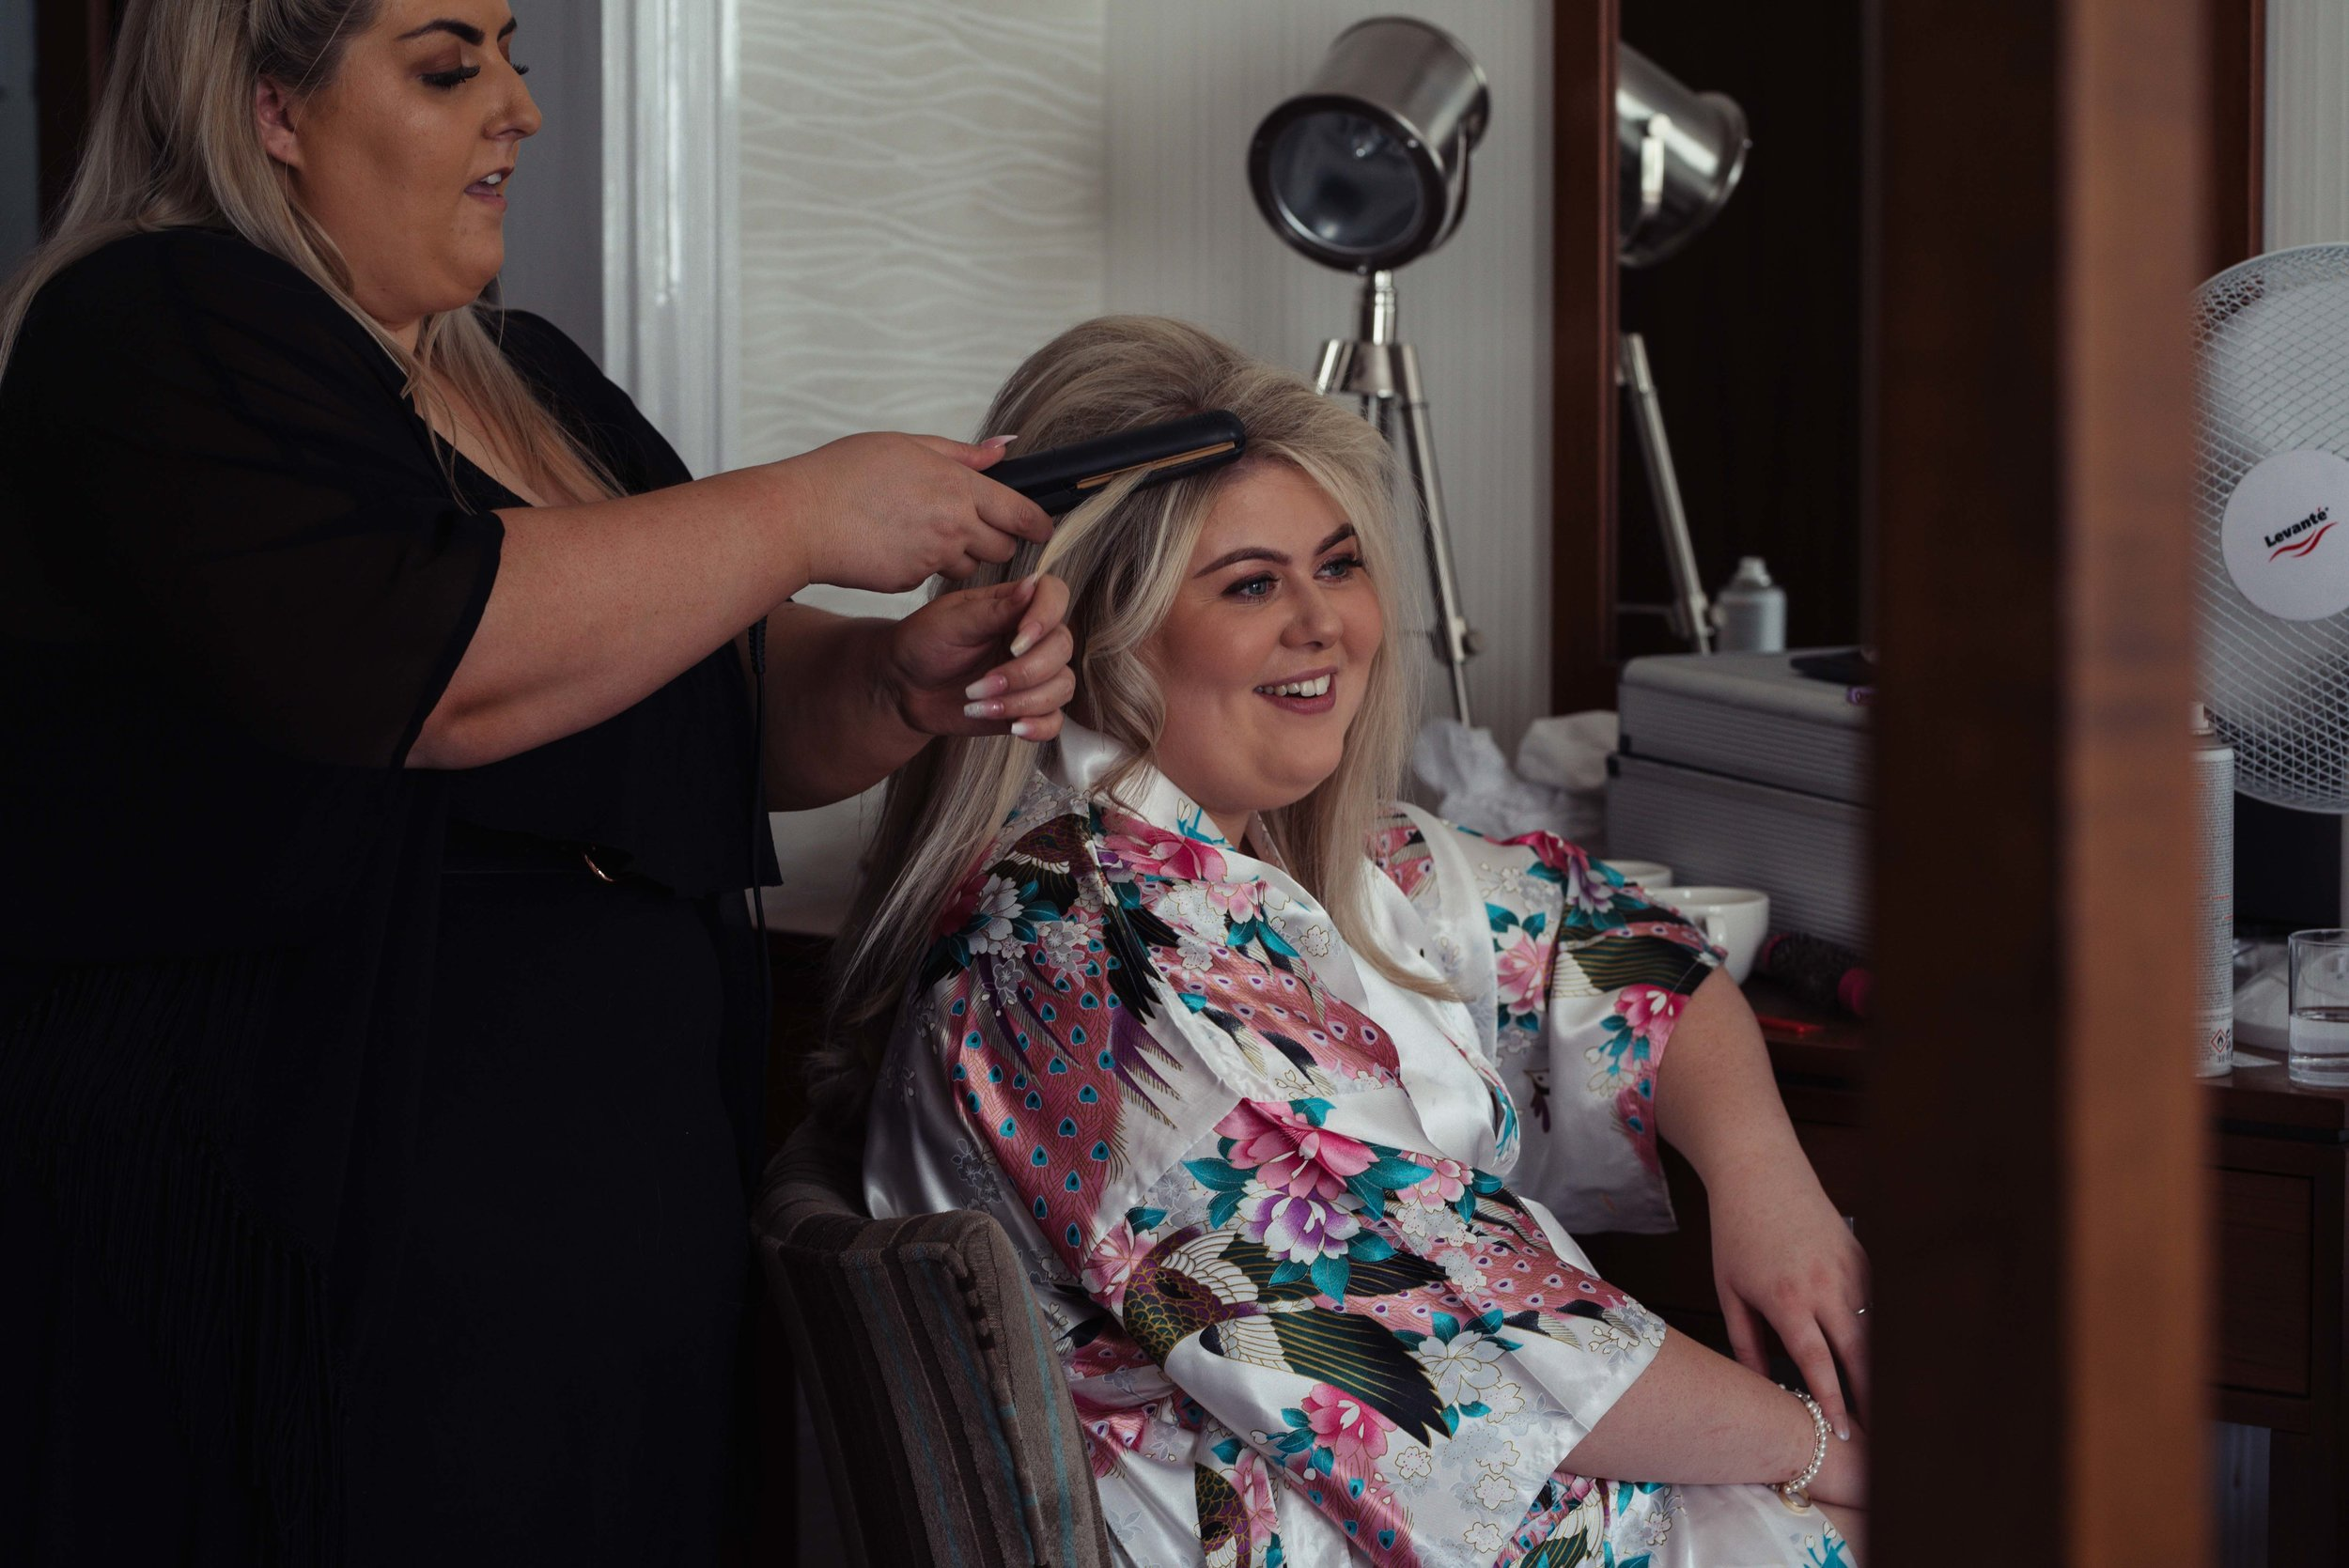 The bride has a giggle as she gets her hair done